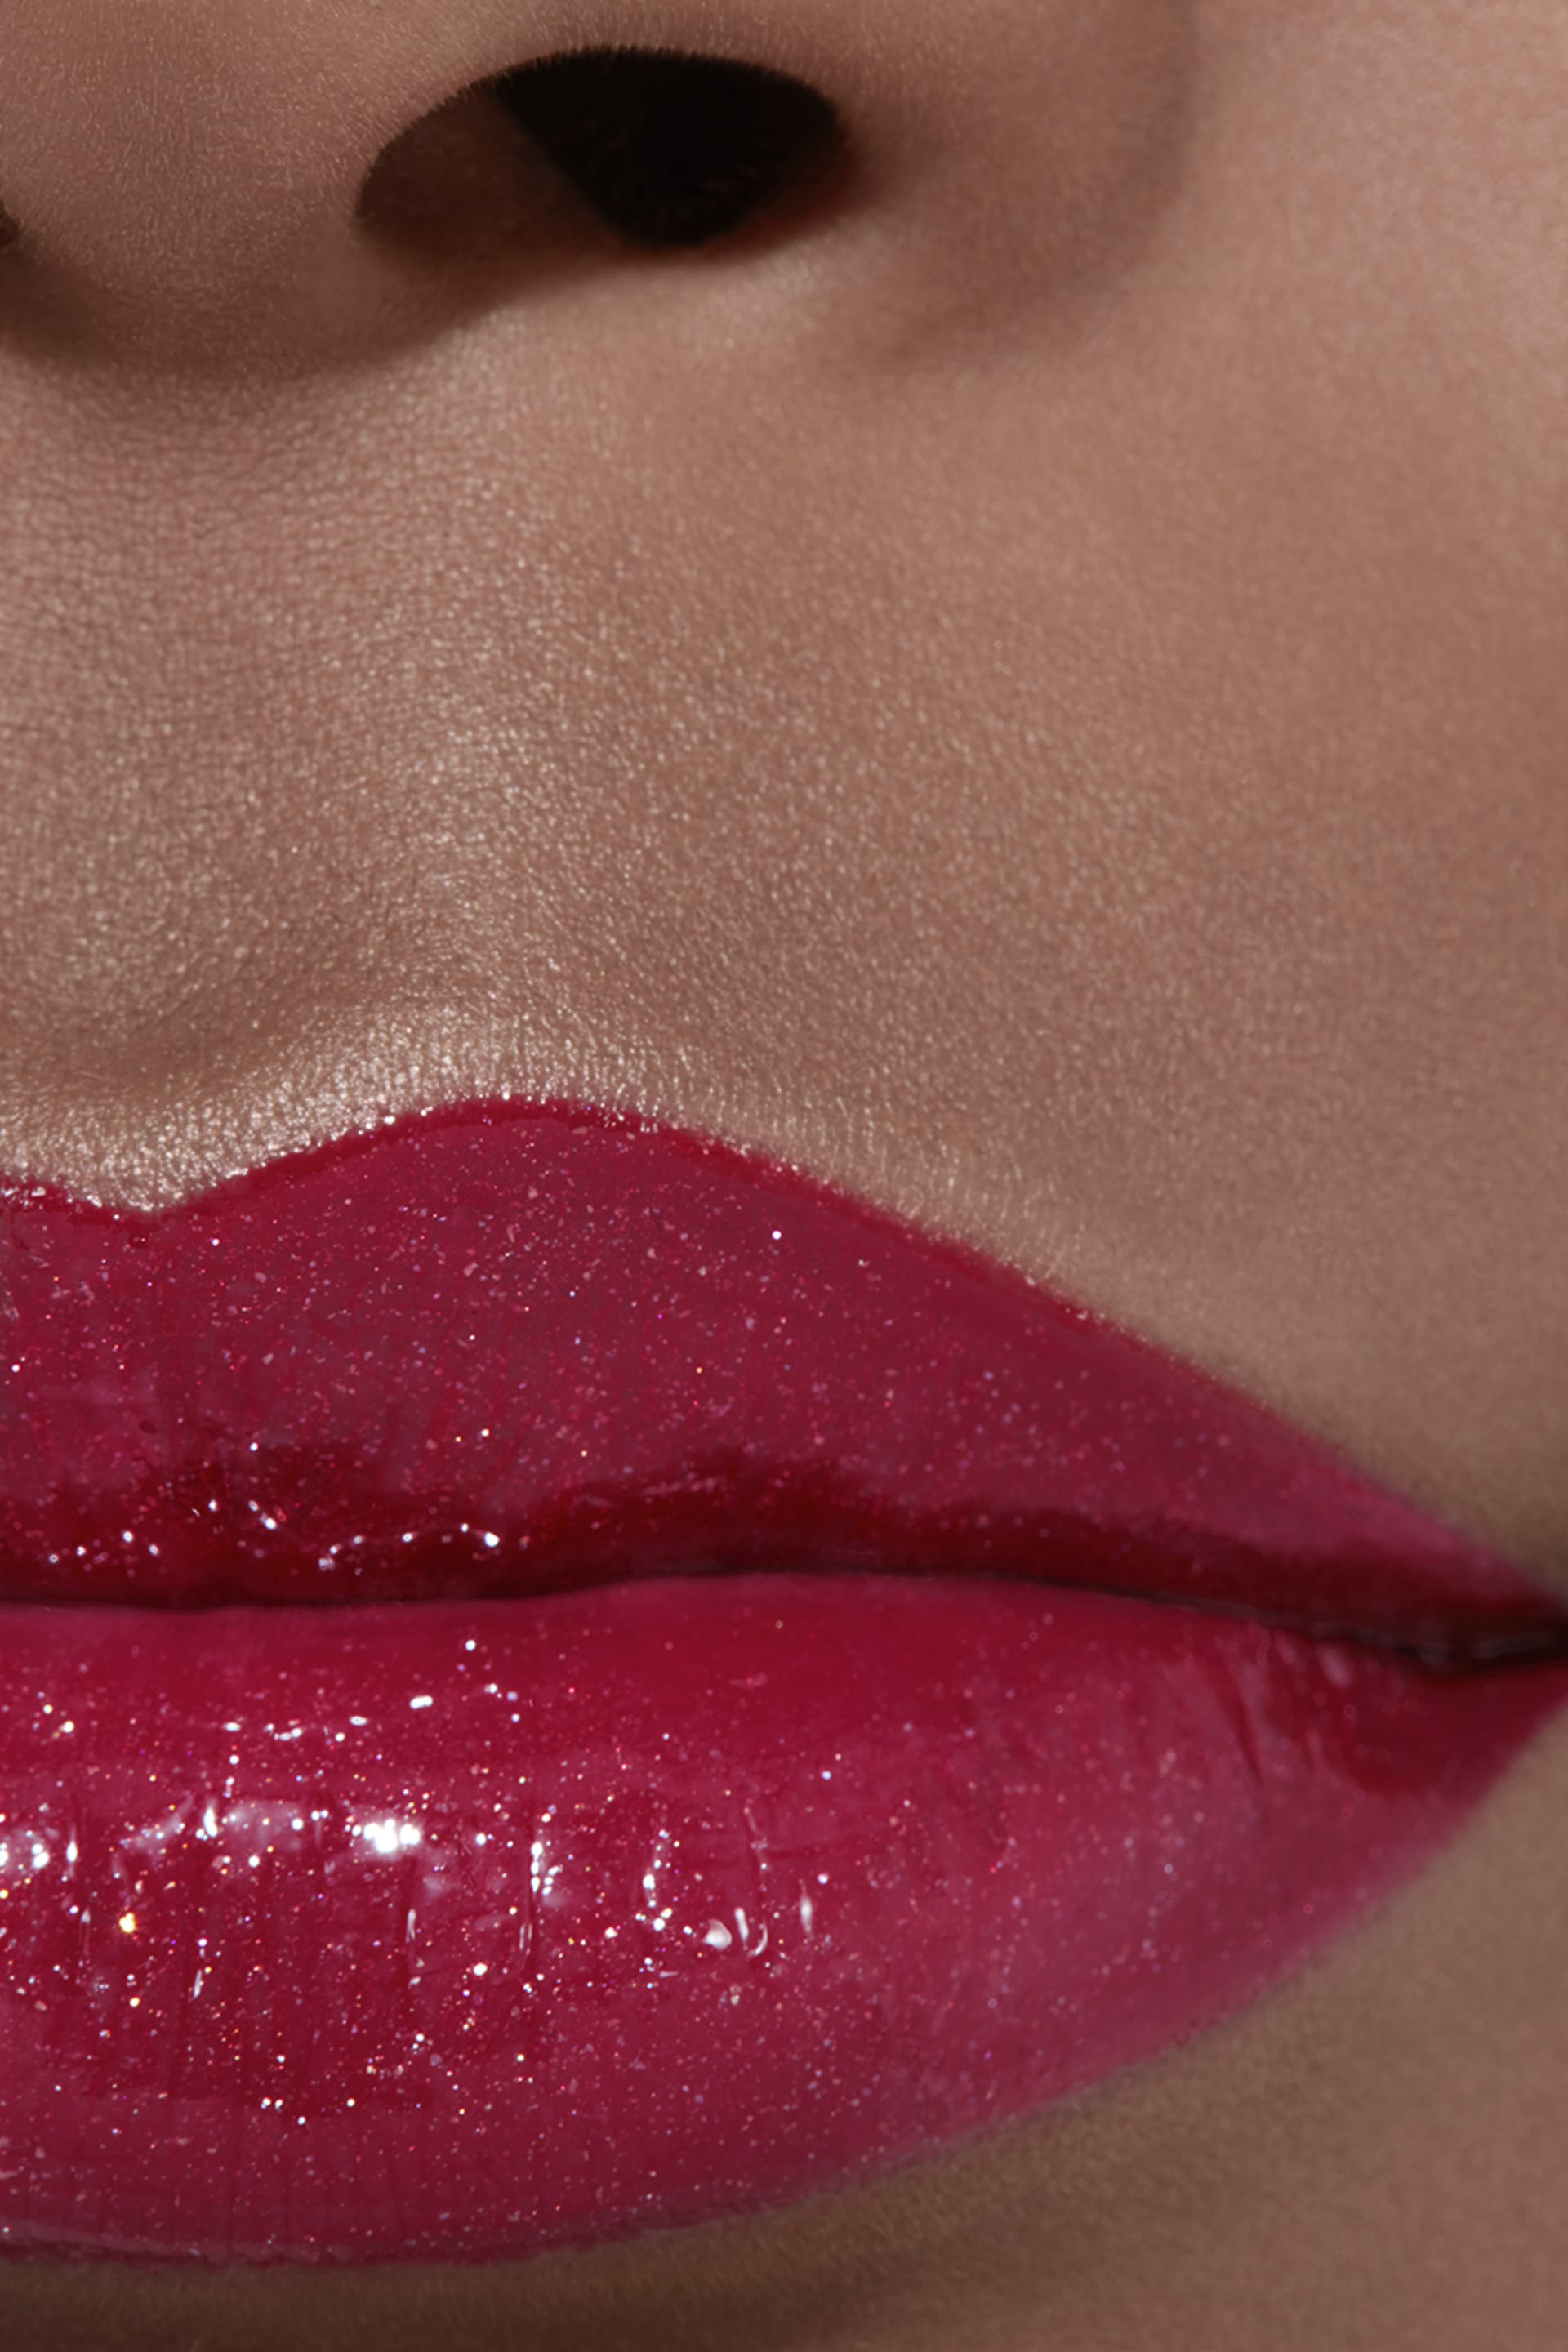 Application makeup visual 2 - ROUGE COCO GLOSS 774 - EXCITATION